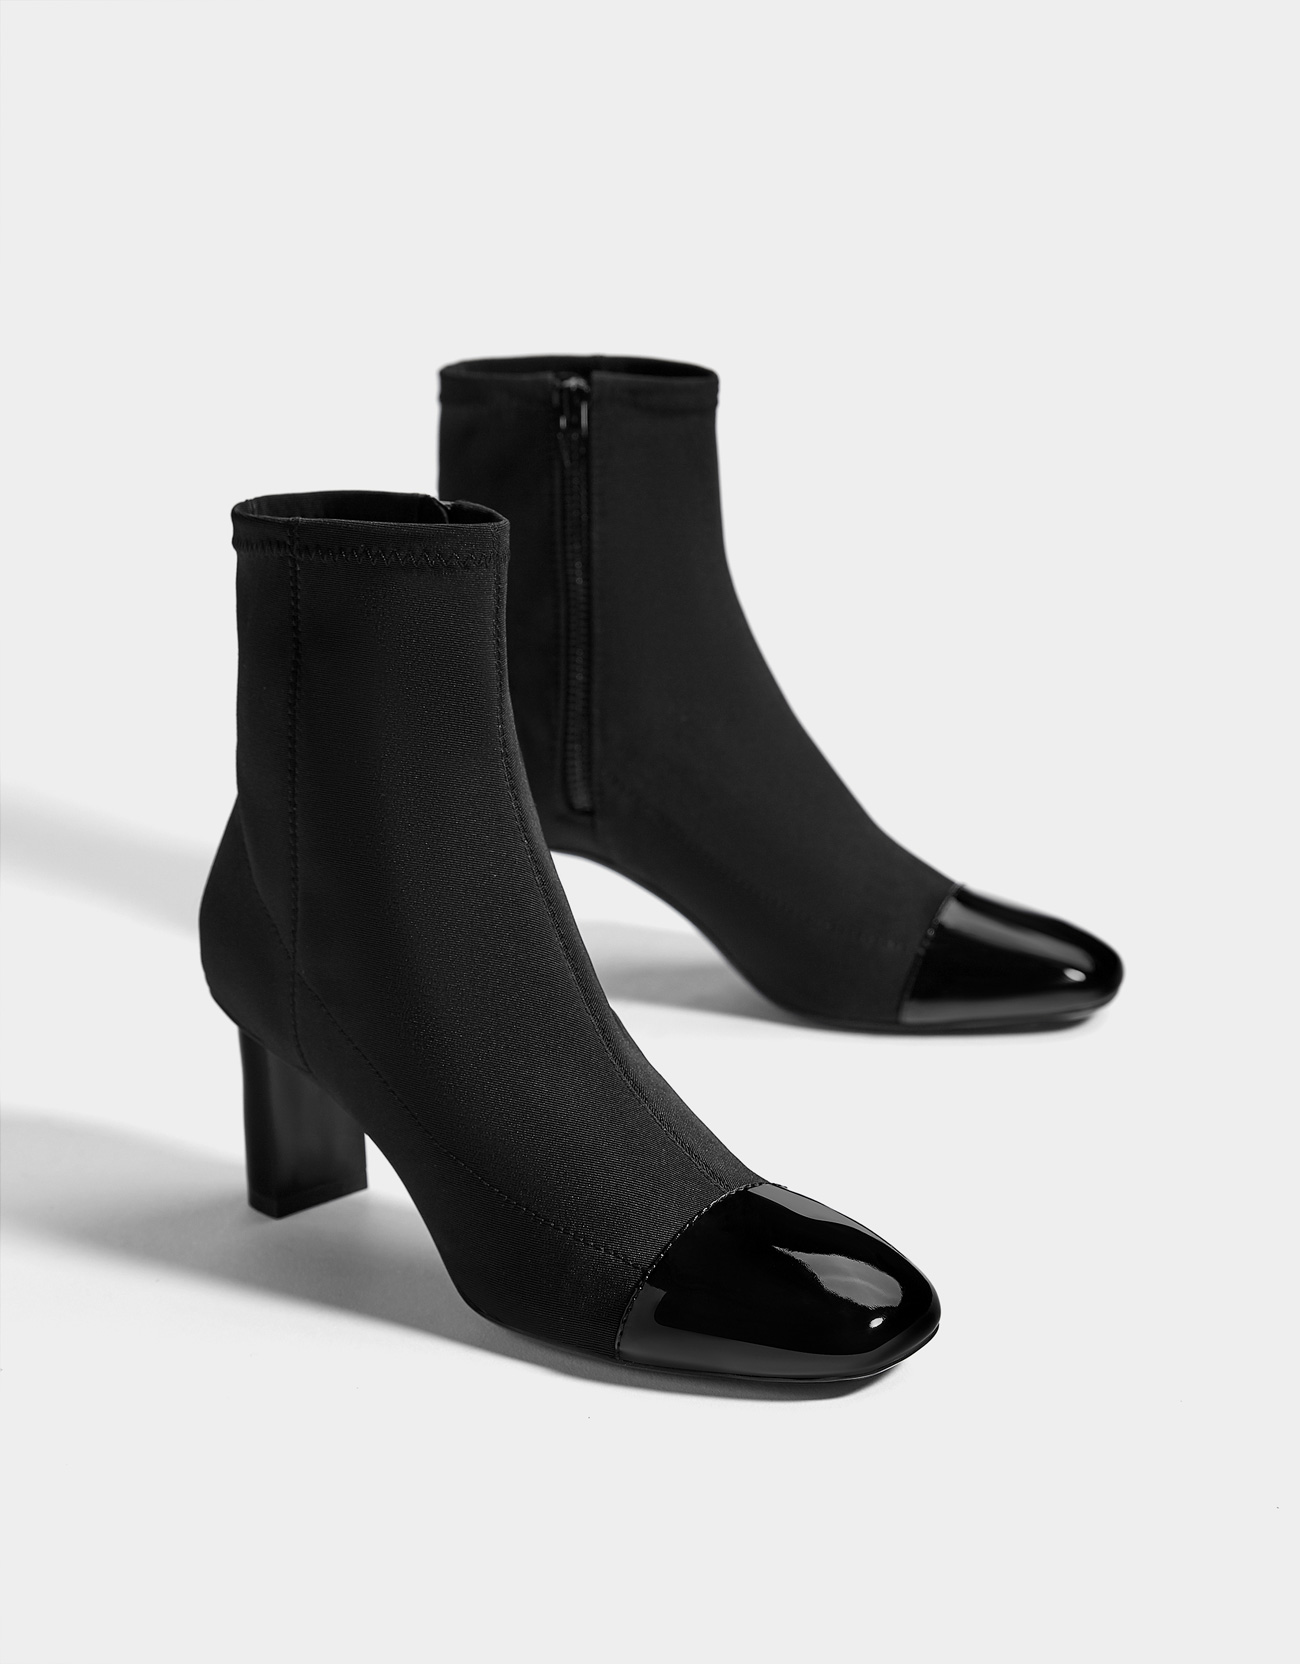 2cd4ee39899d1 Mid-heel patent finish toe cap ankle boots - Boots & Ankle boots ...